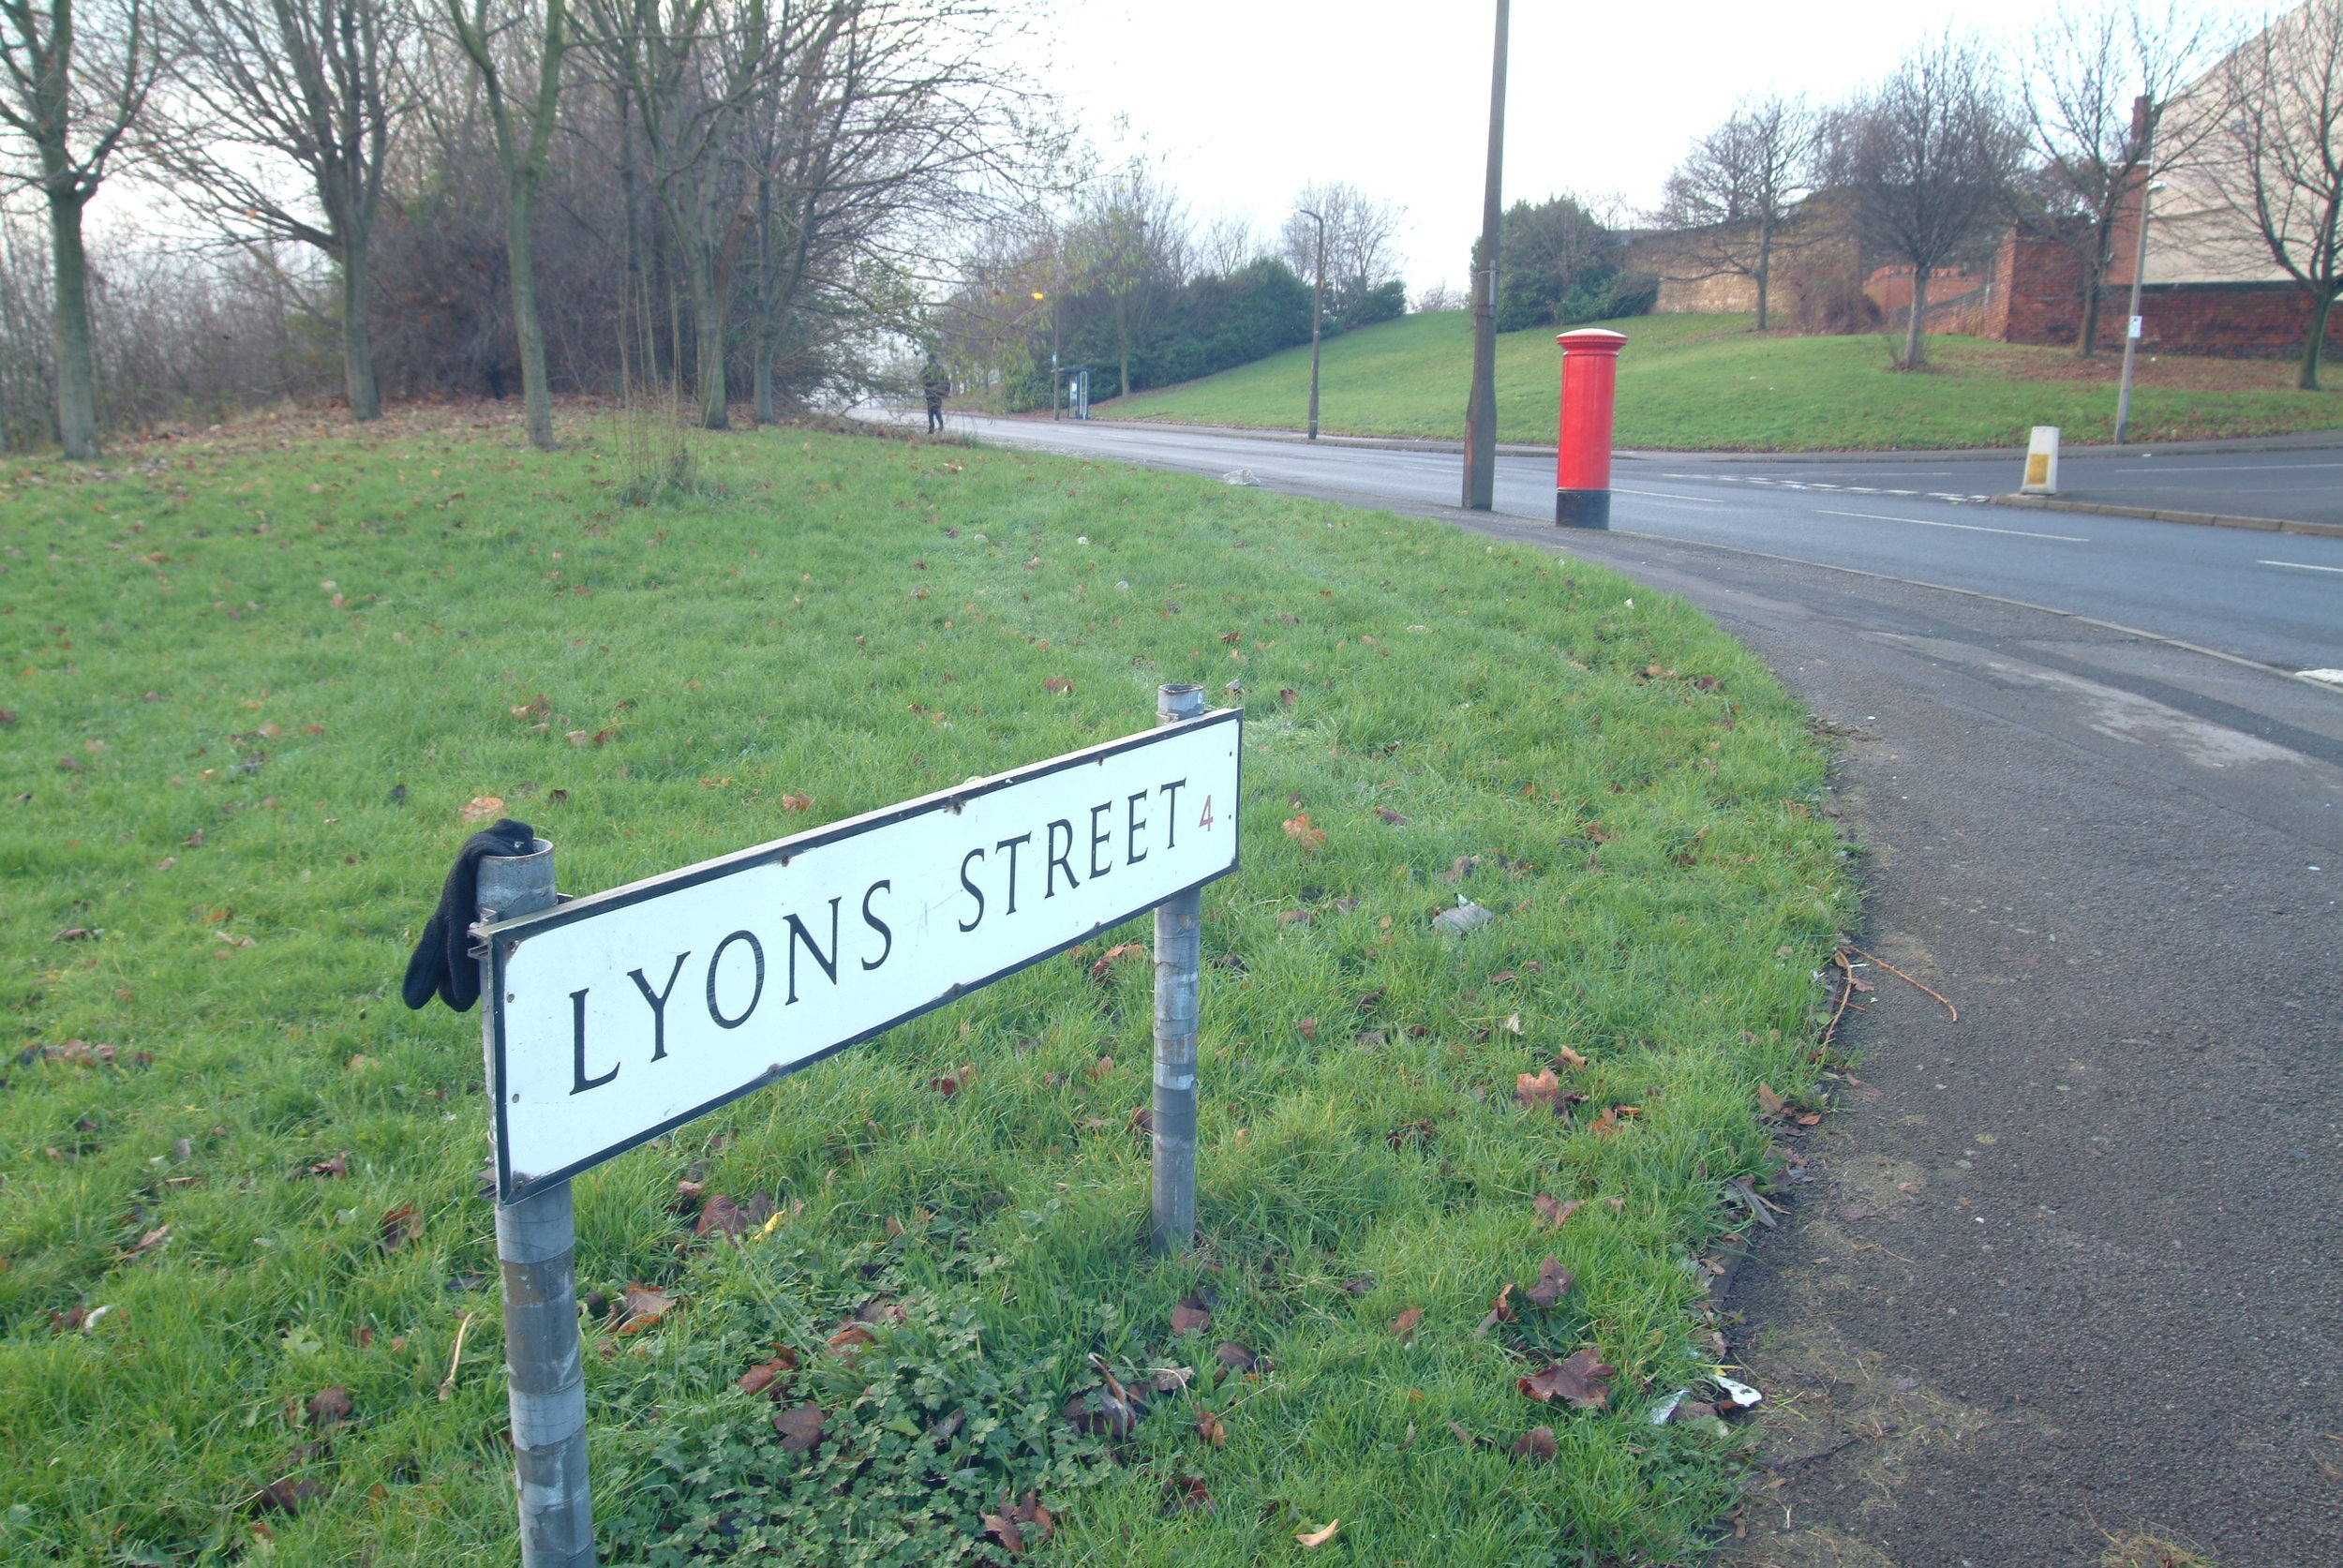 My home town. Sadly, or maybe for the better, the old district of Pitsmoor no longer exists as I knew it growing up. The above photo is the street I grew up on. The street sign is new-- the post box is the original one.